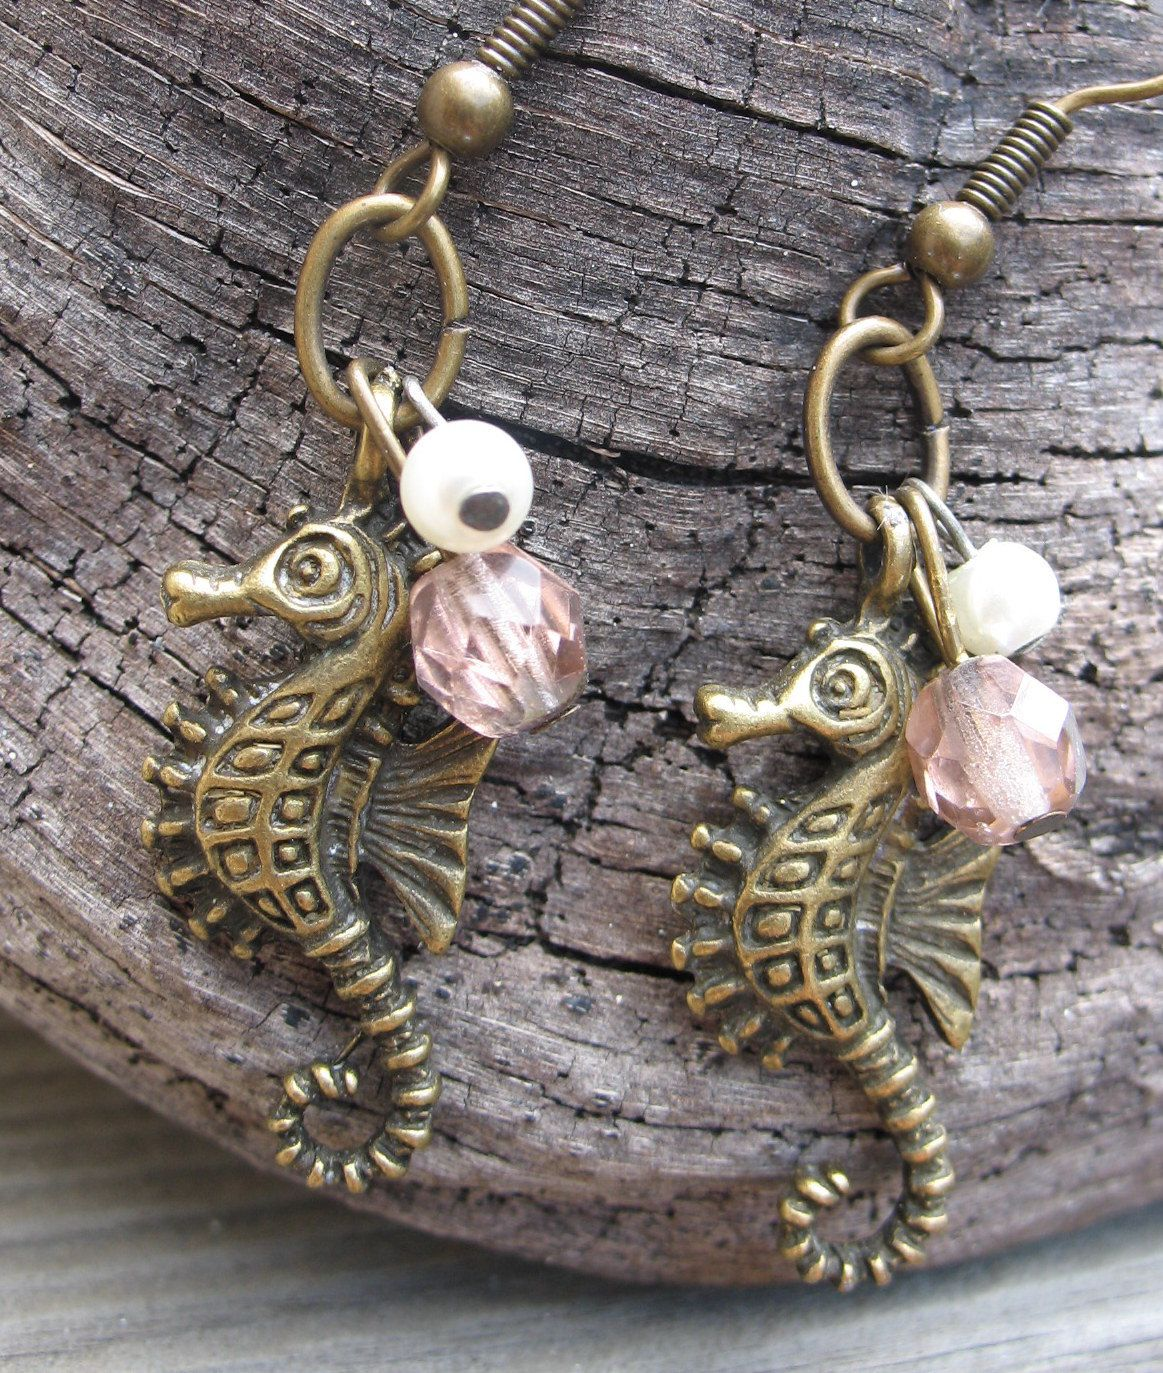 Sea Creature- Antiqued Gold Sea Horse Dangle Earrings with Firepolished Pale Pink Bead and Freshwater Pearl. $17.00, via Etsy.